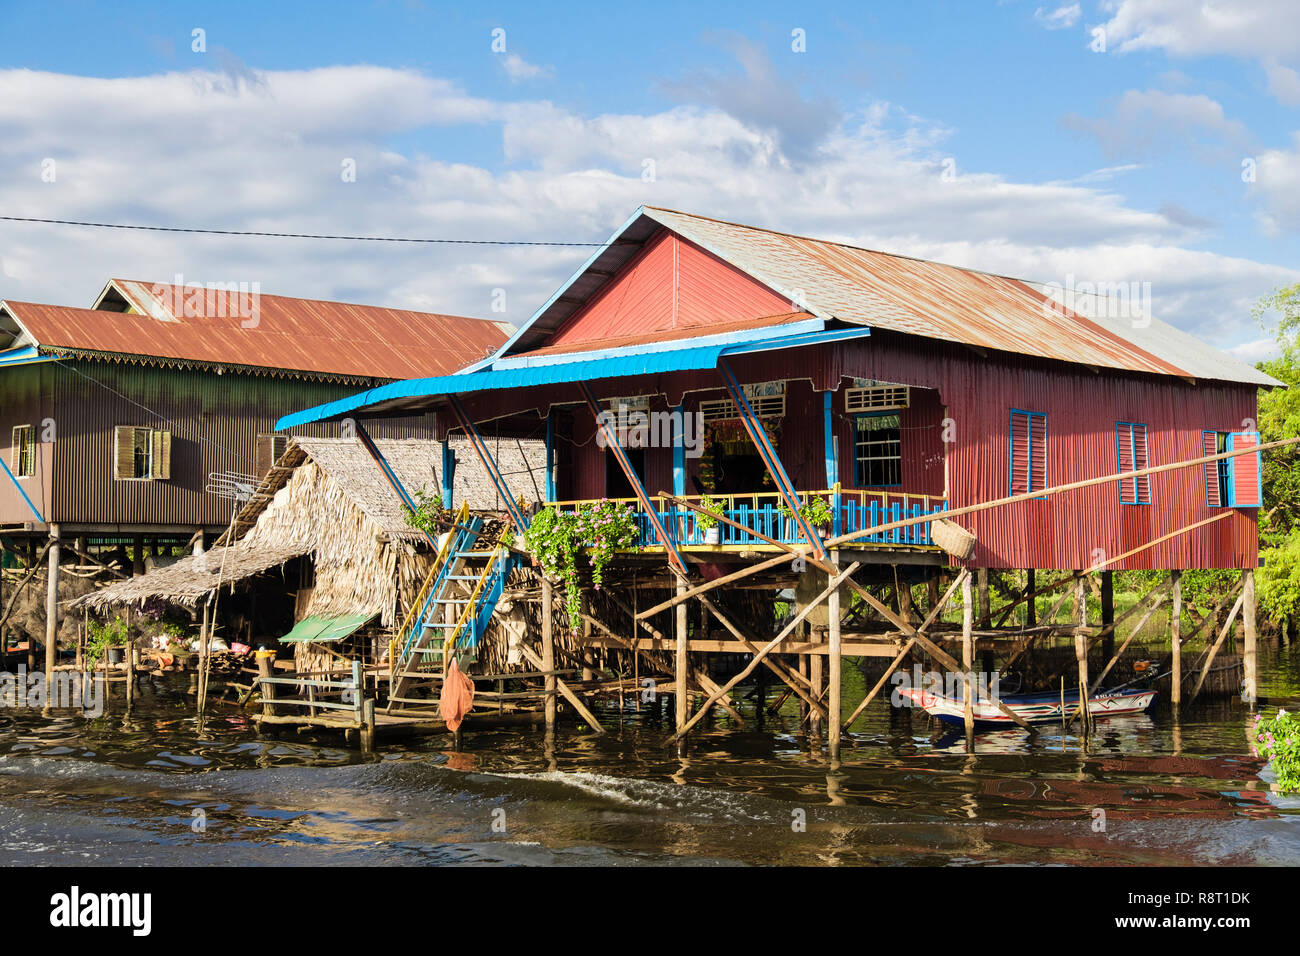 Houses on stilts in floating village in Tonle Sap freshwater lake. Kampong Phluk, Siem Reap, Cambodia, Indochina, southeast Asia Stock Photo